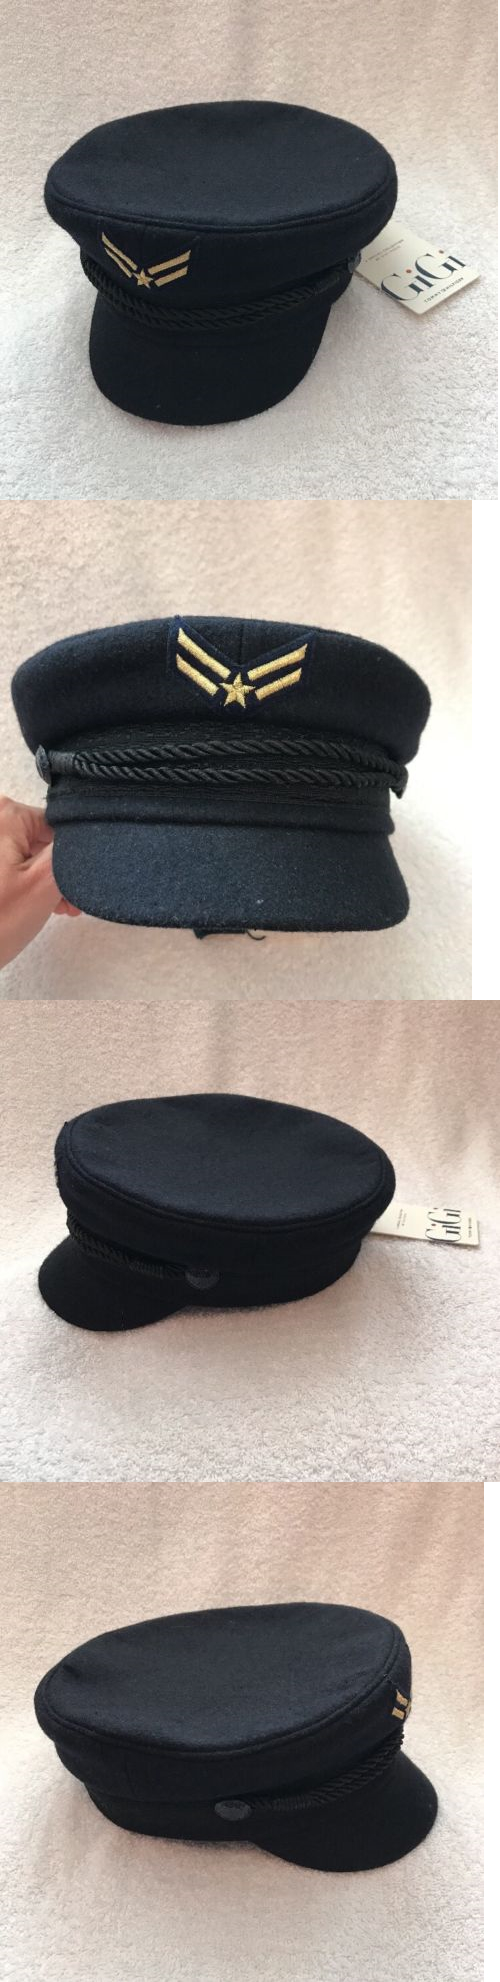 d12bfbc6 Hats 45230: Nwt Tommy Hilfiger X Gigi Hadid Navy Blue Wool Sailor Hat Cap  Size S M -> BUY IT NOW ONLY: $69.99 on eBay!